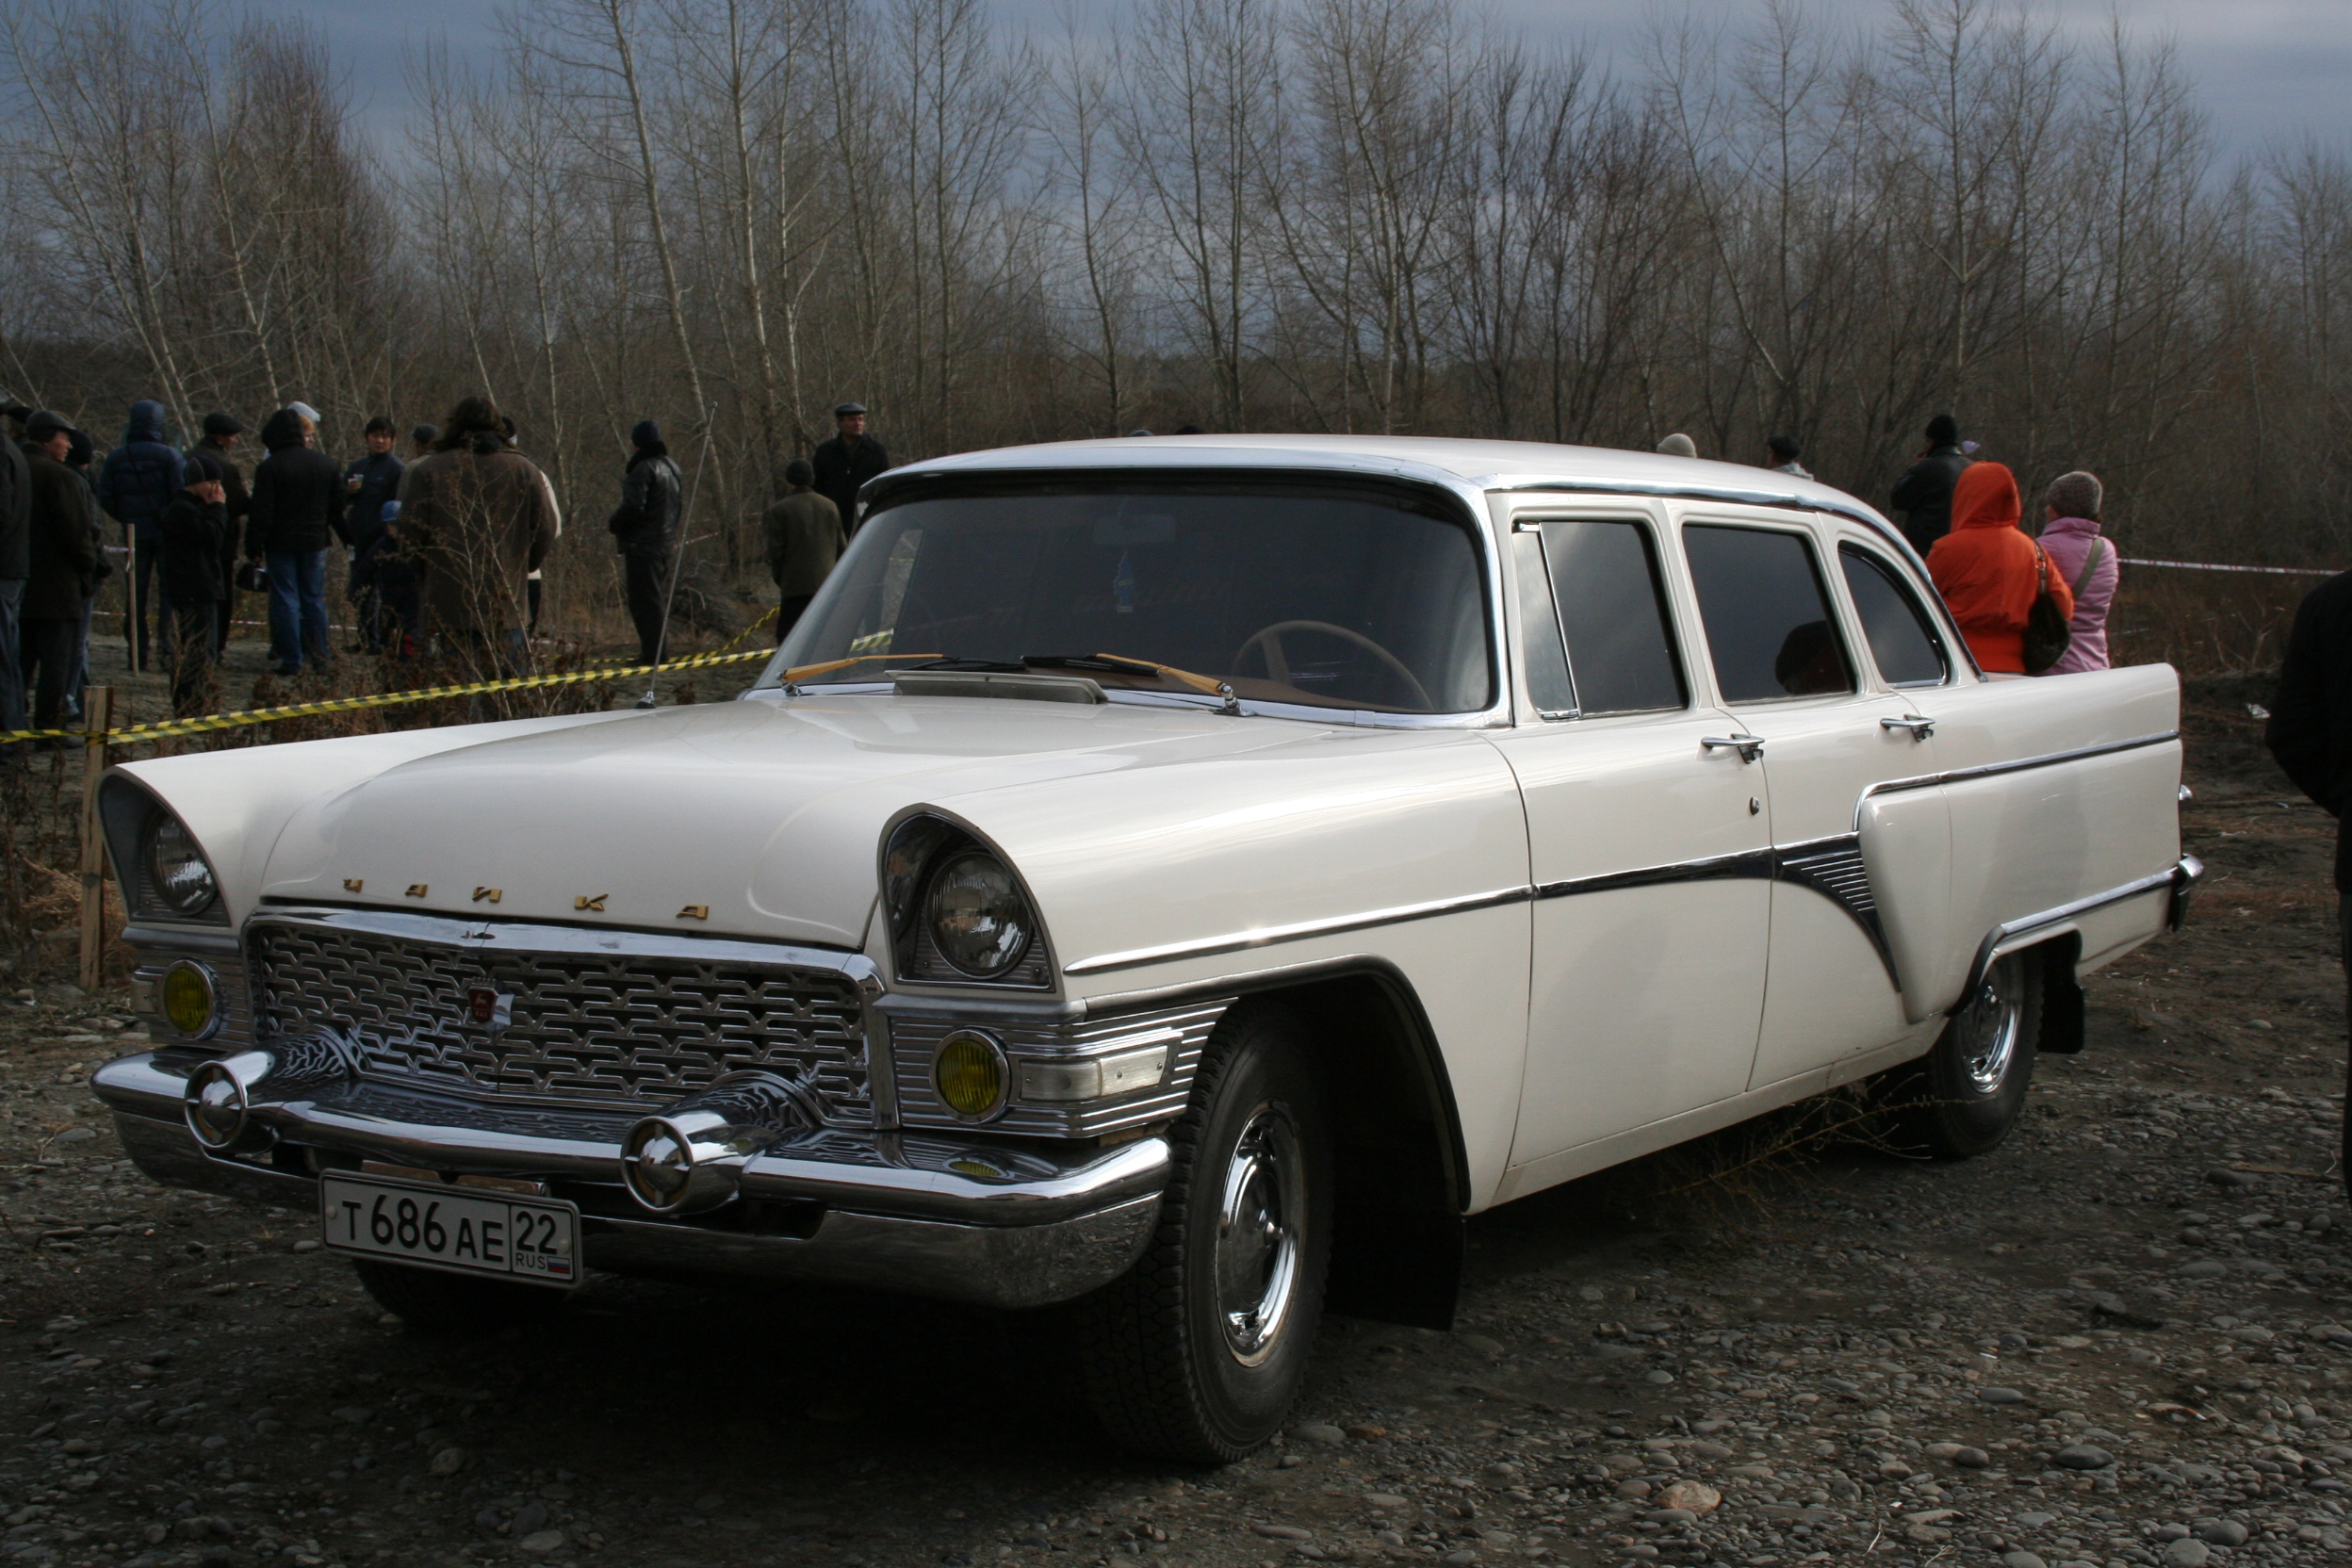 Russian_car_GAZ-13_Chaika.jpg